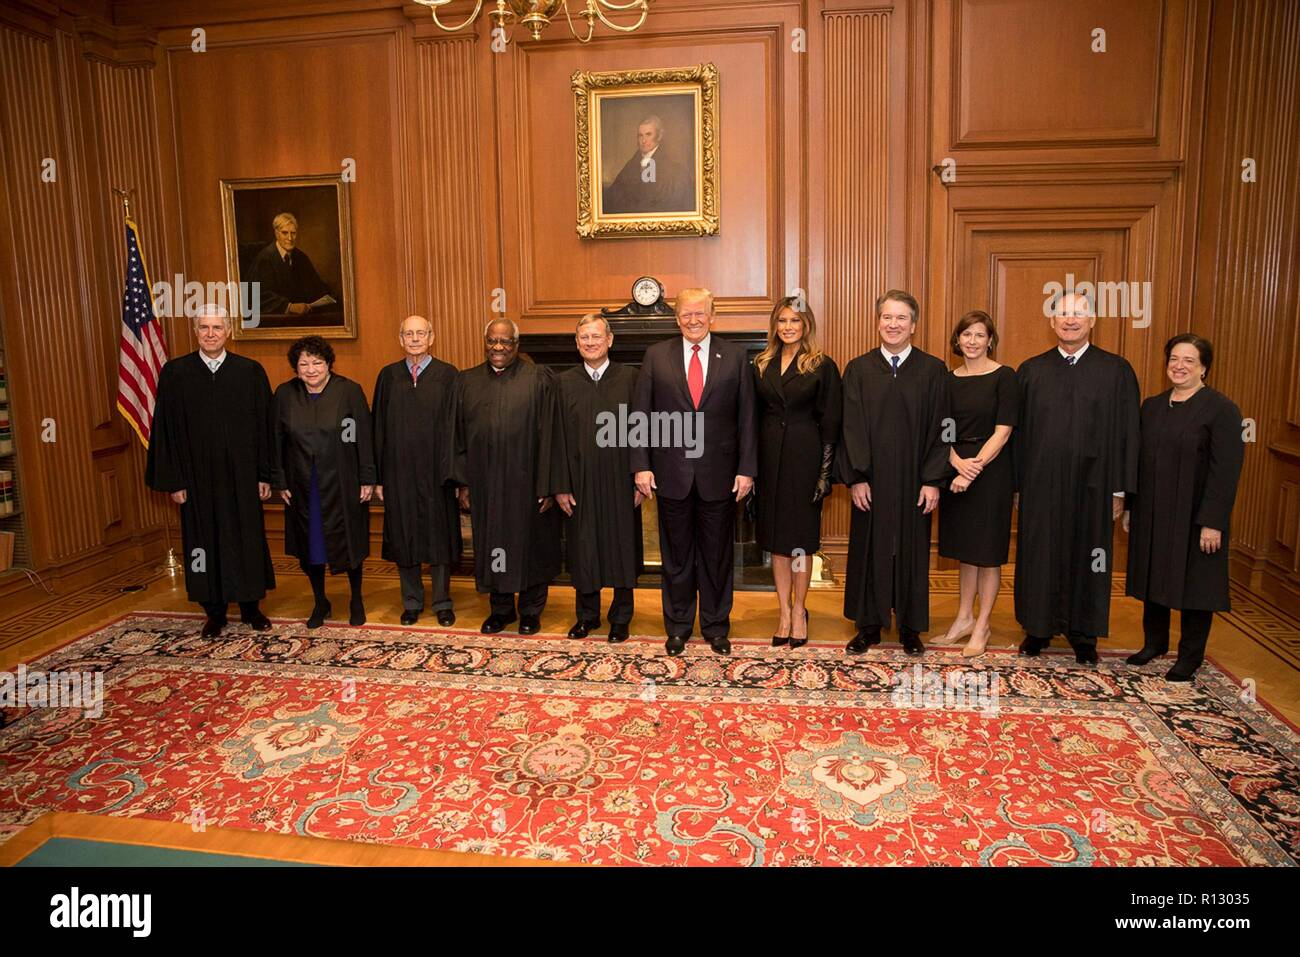 Washington DC, USA. 8th Nov 2018. U.S President Donald Trump and First Lady Melania Trump stands for a photo with Supreme Court Justices in the Justices Conference Room before the investiture ceremony November 8, 2018 in Washington, DC. From left are:  Associate Justices Neil Gorsuch, Sonia Sotomayor, Stephen Breyer, Clarence Thomas, Chief Justice John Roberts, President Donald Trump, first lady Melania Trump, Associate Justice Brett Kavanaugh, Ashley Kavanaugh, and Associate Justices Samuel Alito, and Elena Kagan. Credit: Planetpix/Alamy Live News - Stock Image